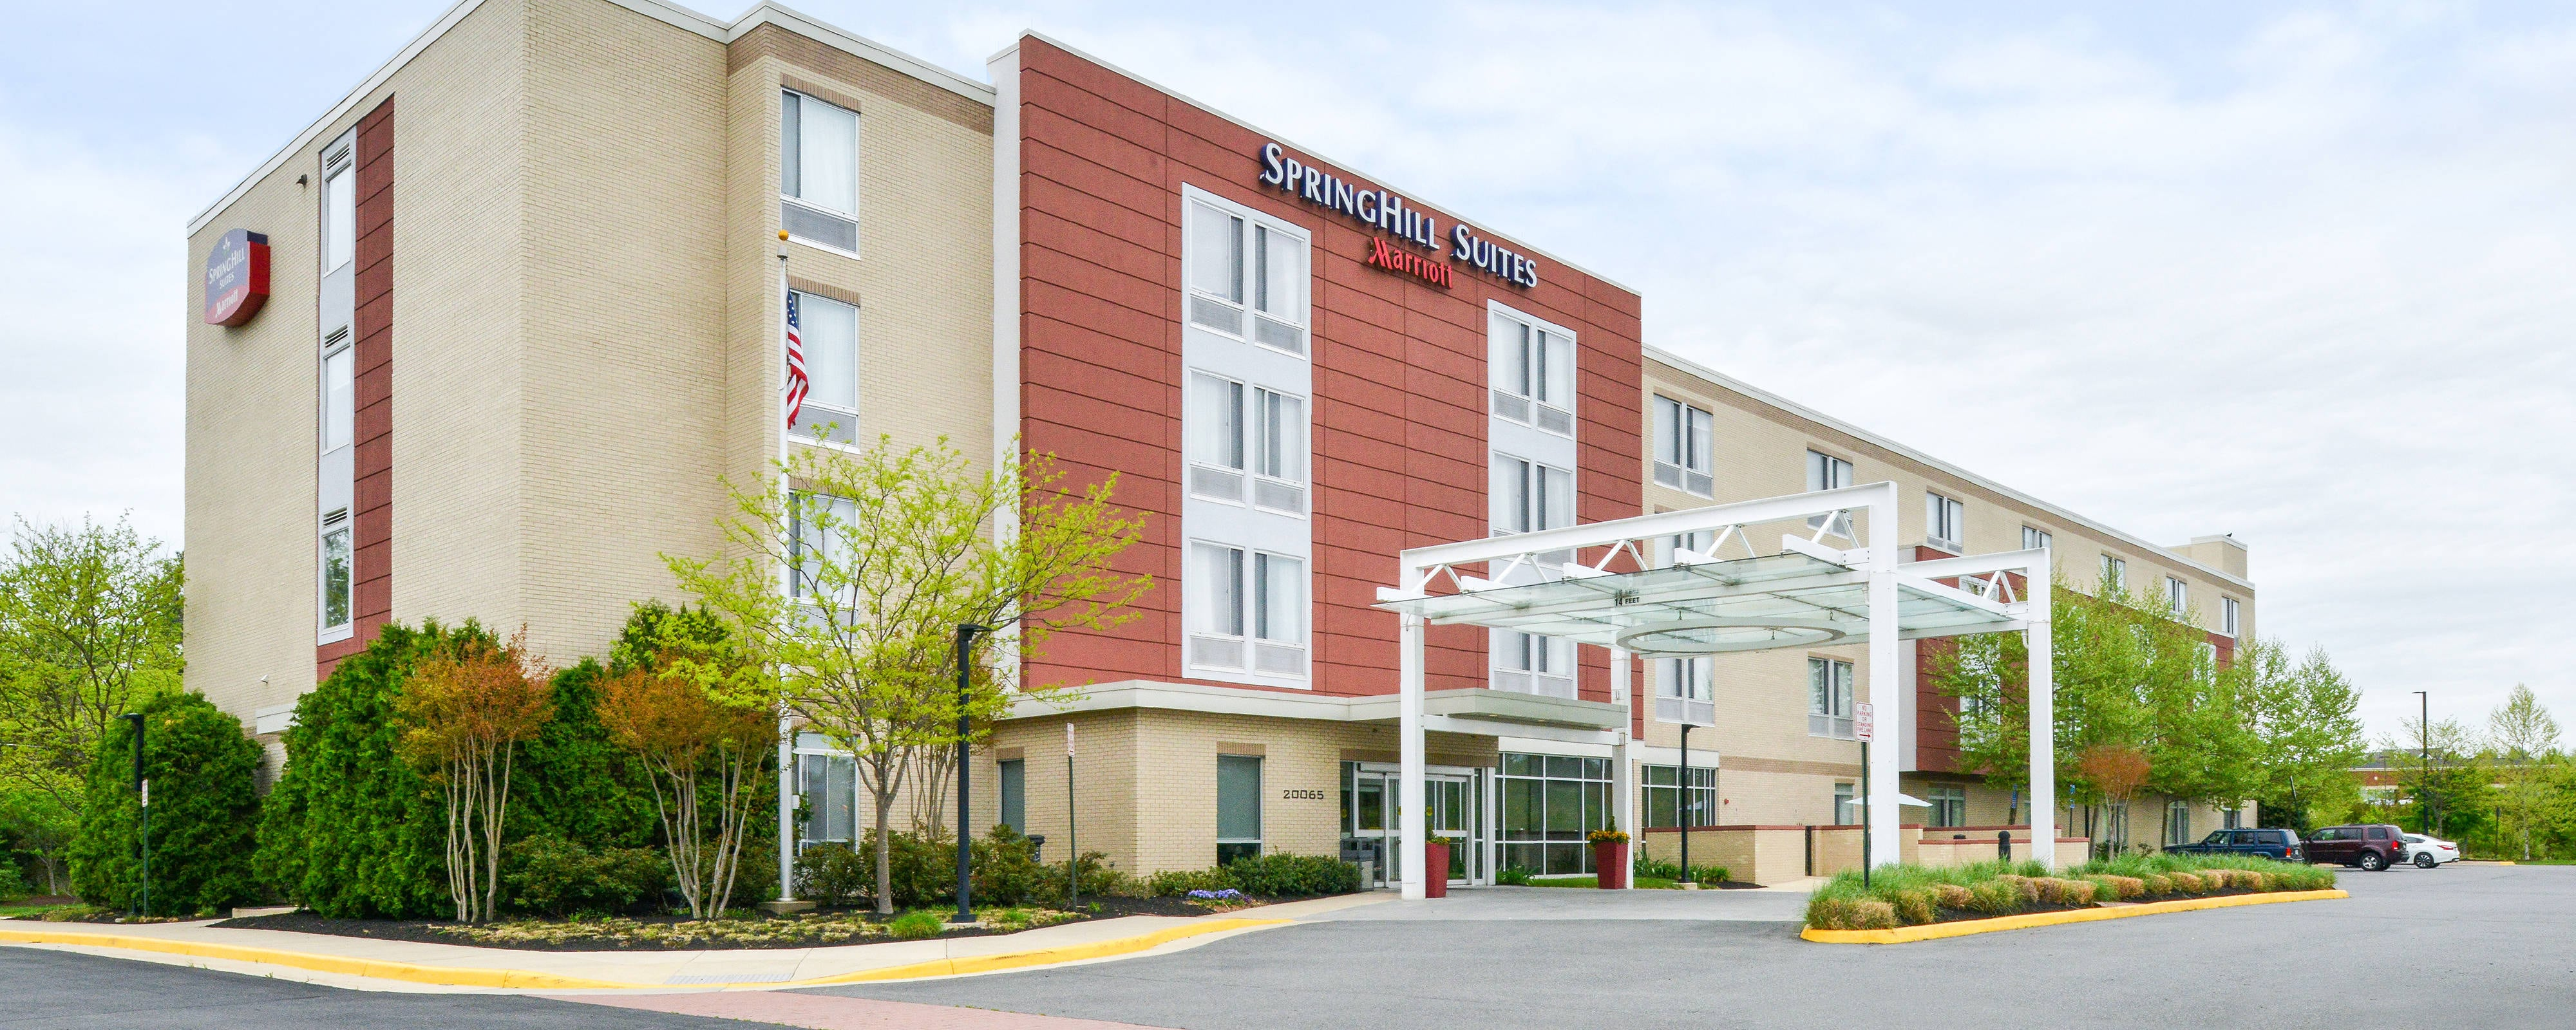 Springhill Suites Hotel Near Leesburg Outlets Loudoun County Hotels Ashburn Va